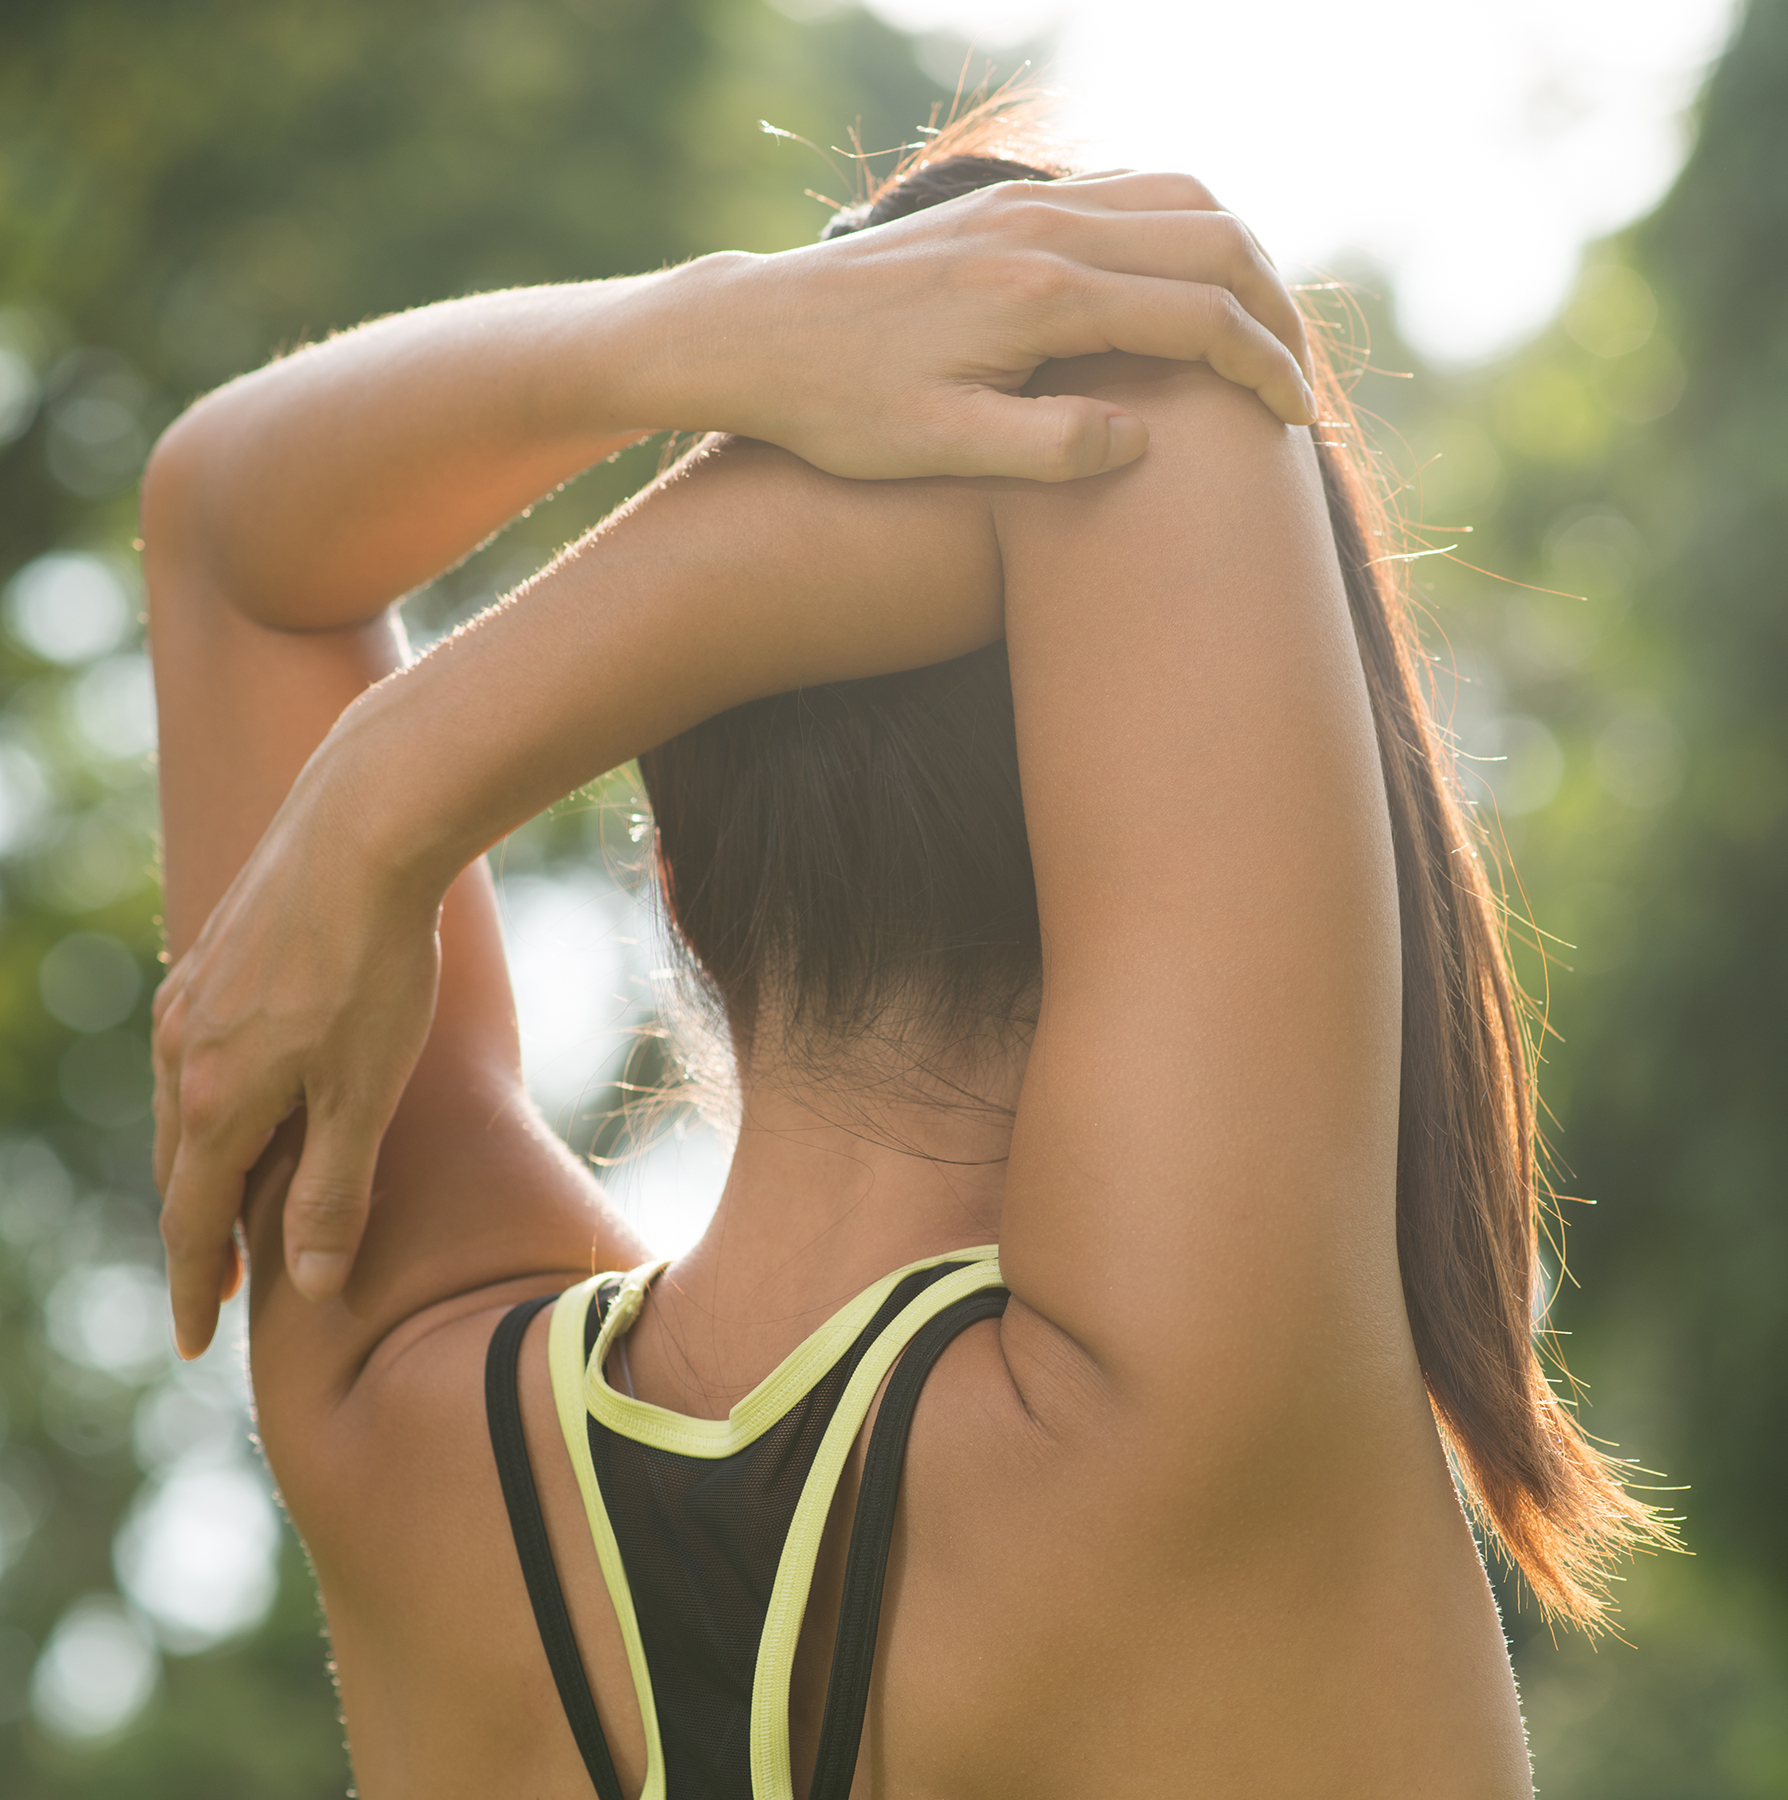 Woman stretching arm